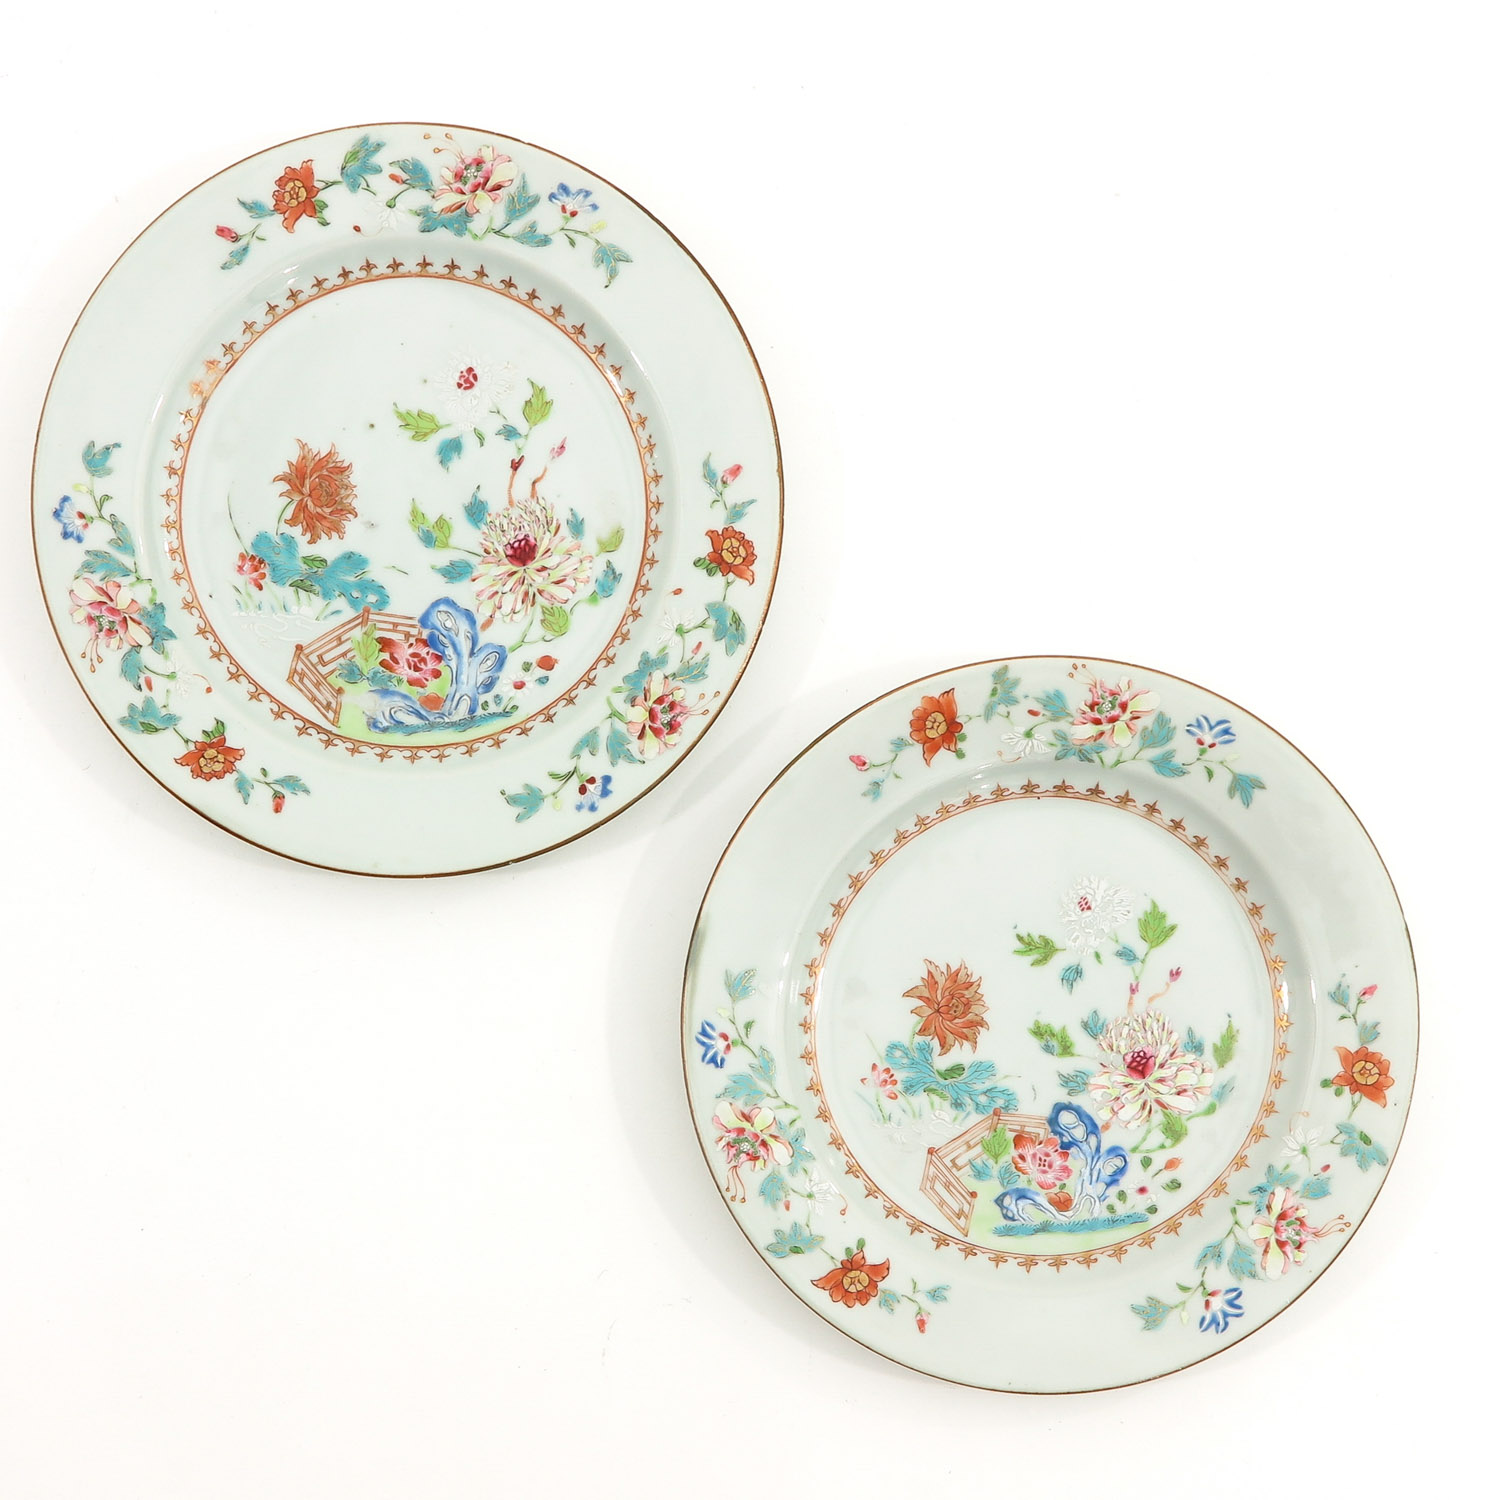 A Collection of 4 Famille Rose Plates - Image 5 of 10